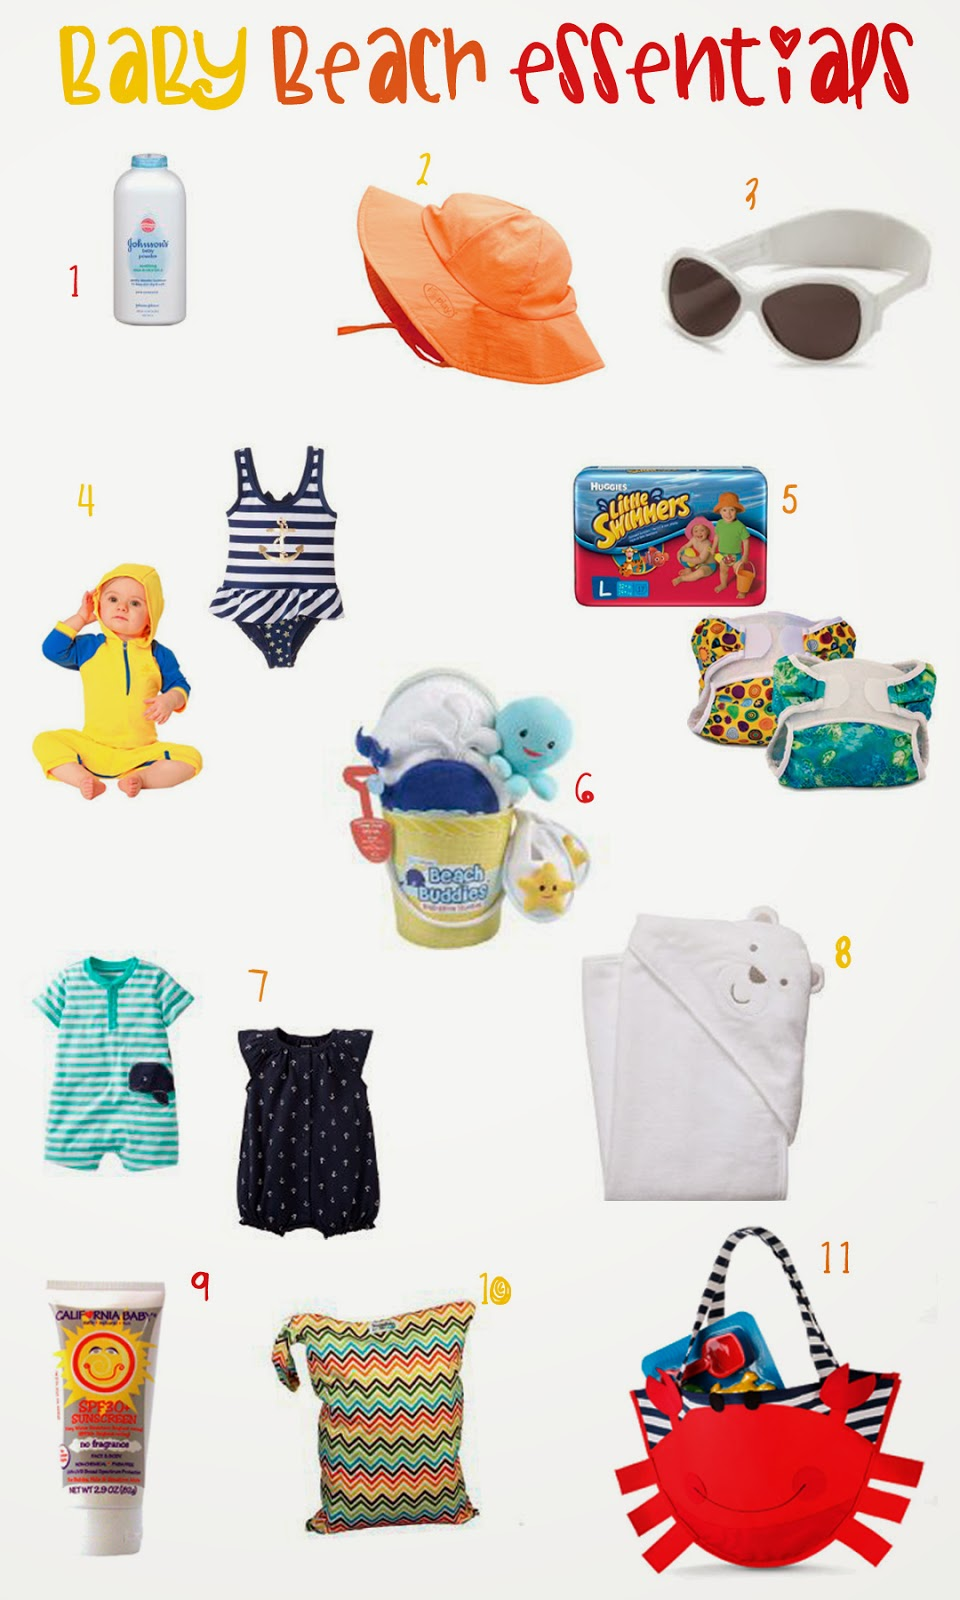 Baby Beach Essentials, Summer baby products